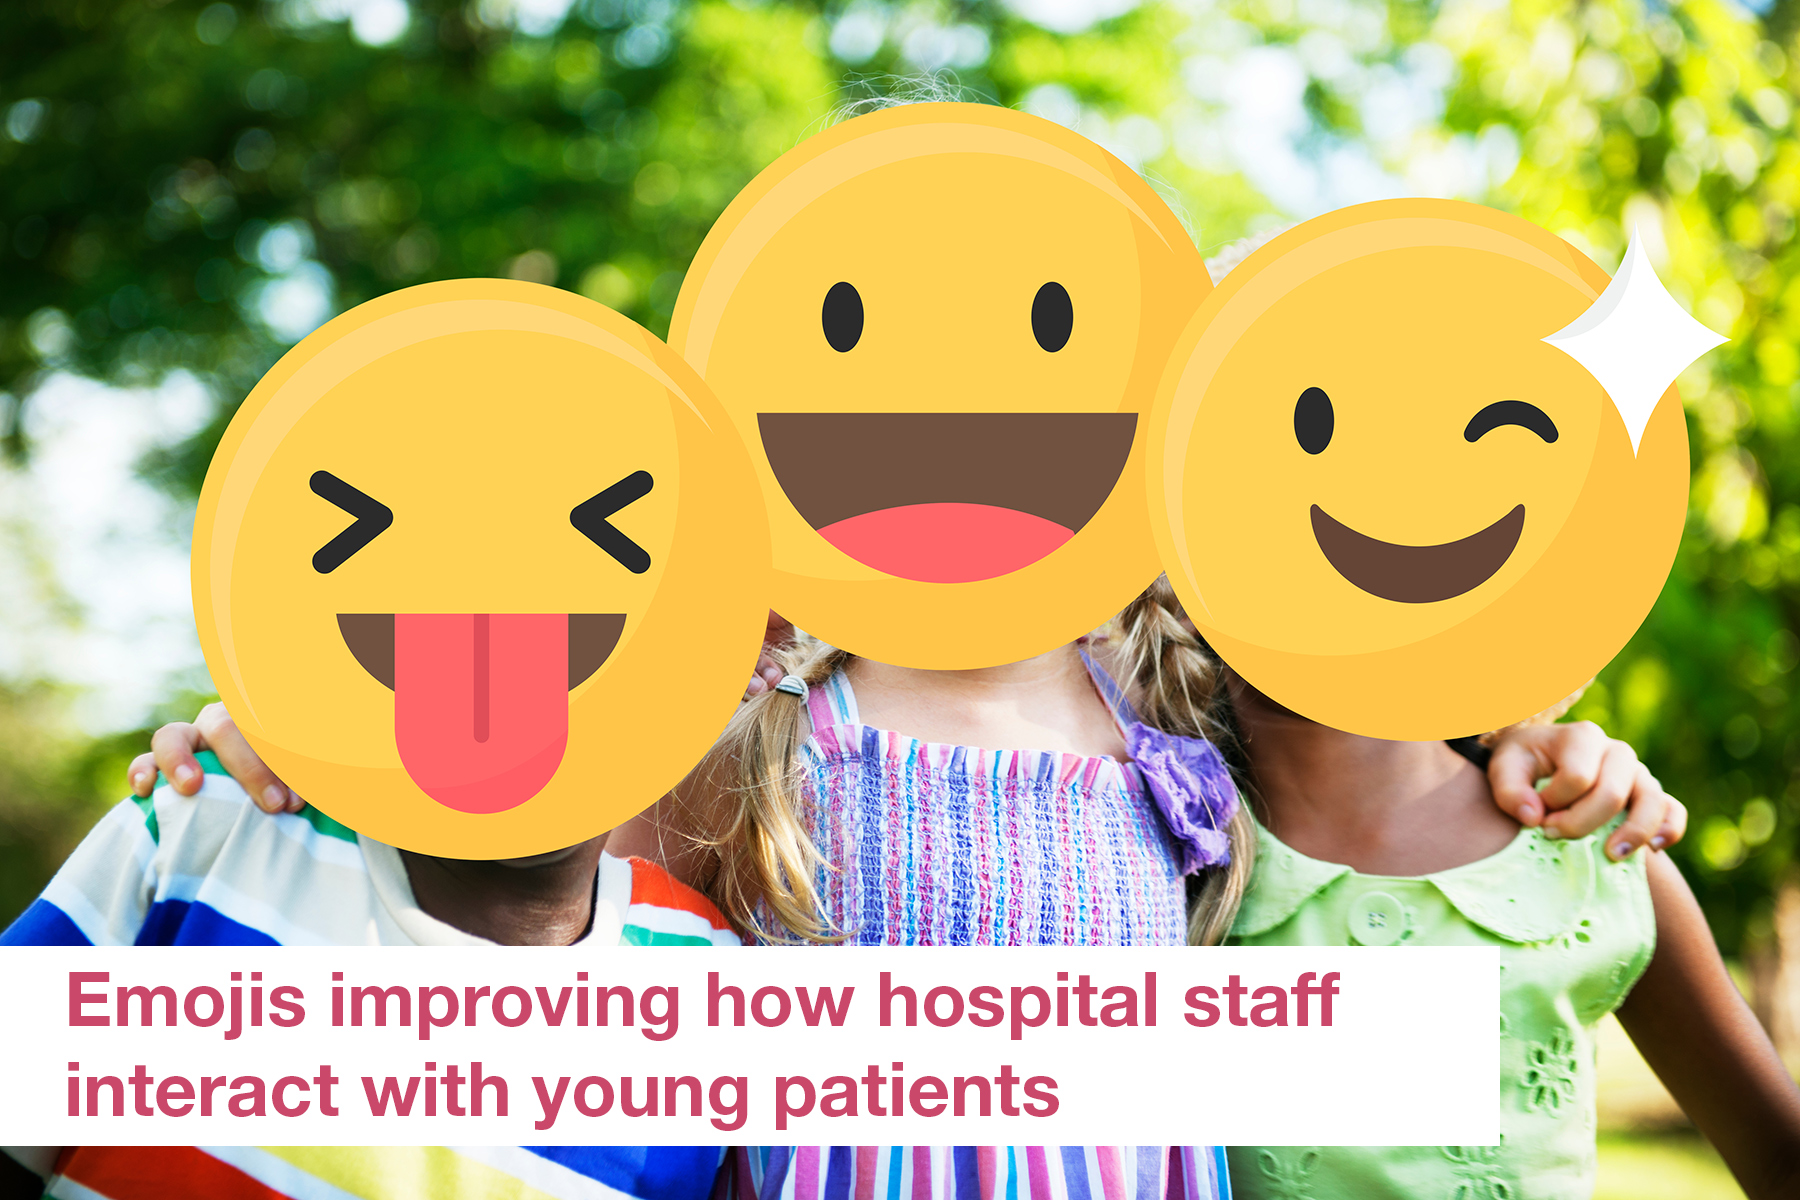 Emojis improving how hospital staff interact with young patients